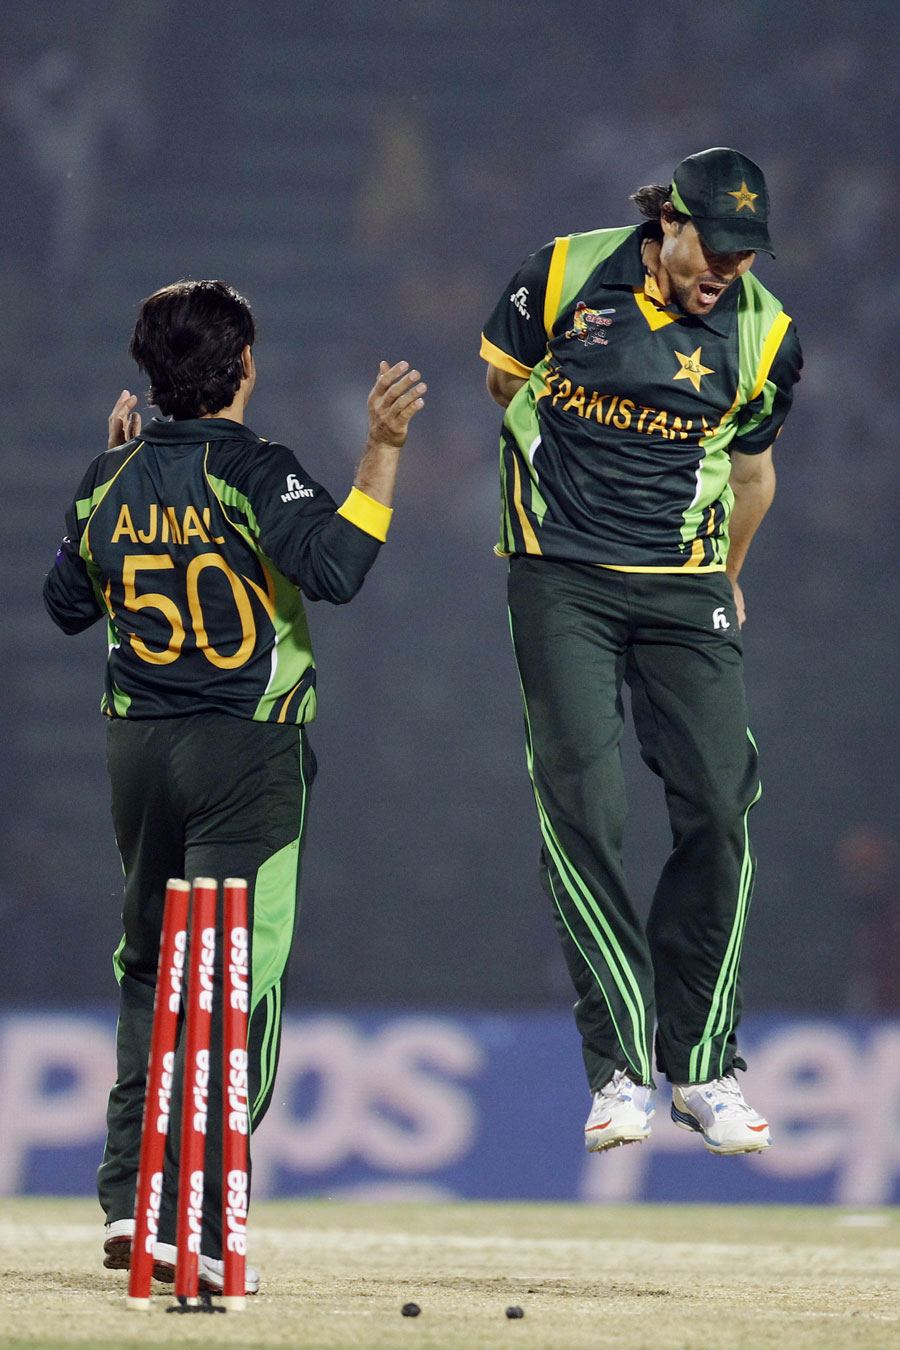 Saeed Ajmal And Mohammad Hafeez Bowling Creates Pakistan a 72 Runs With A Bonus Point Victory Against Afghanistan in the 3rd Match Of Asia Cup 2014